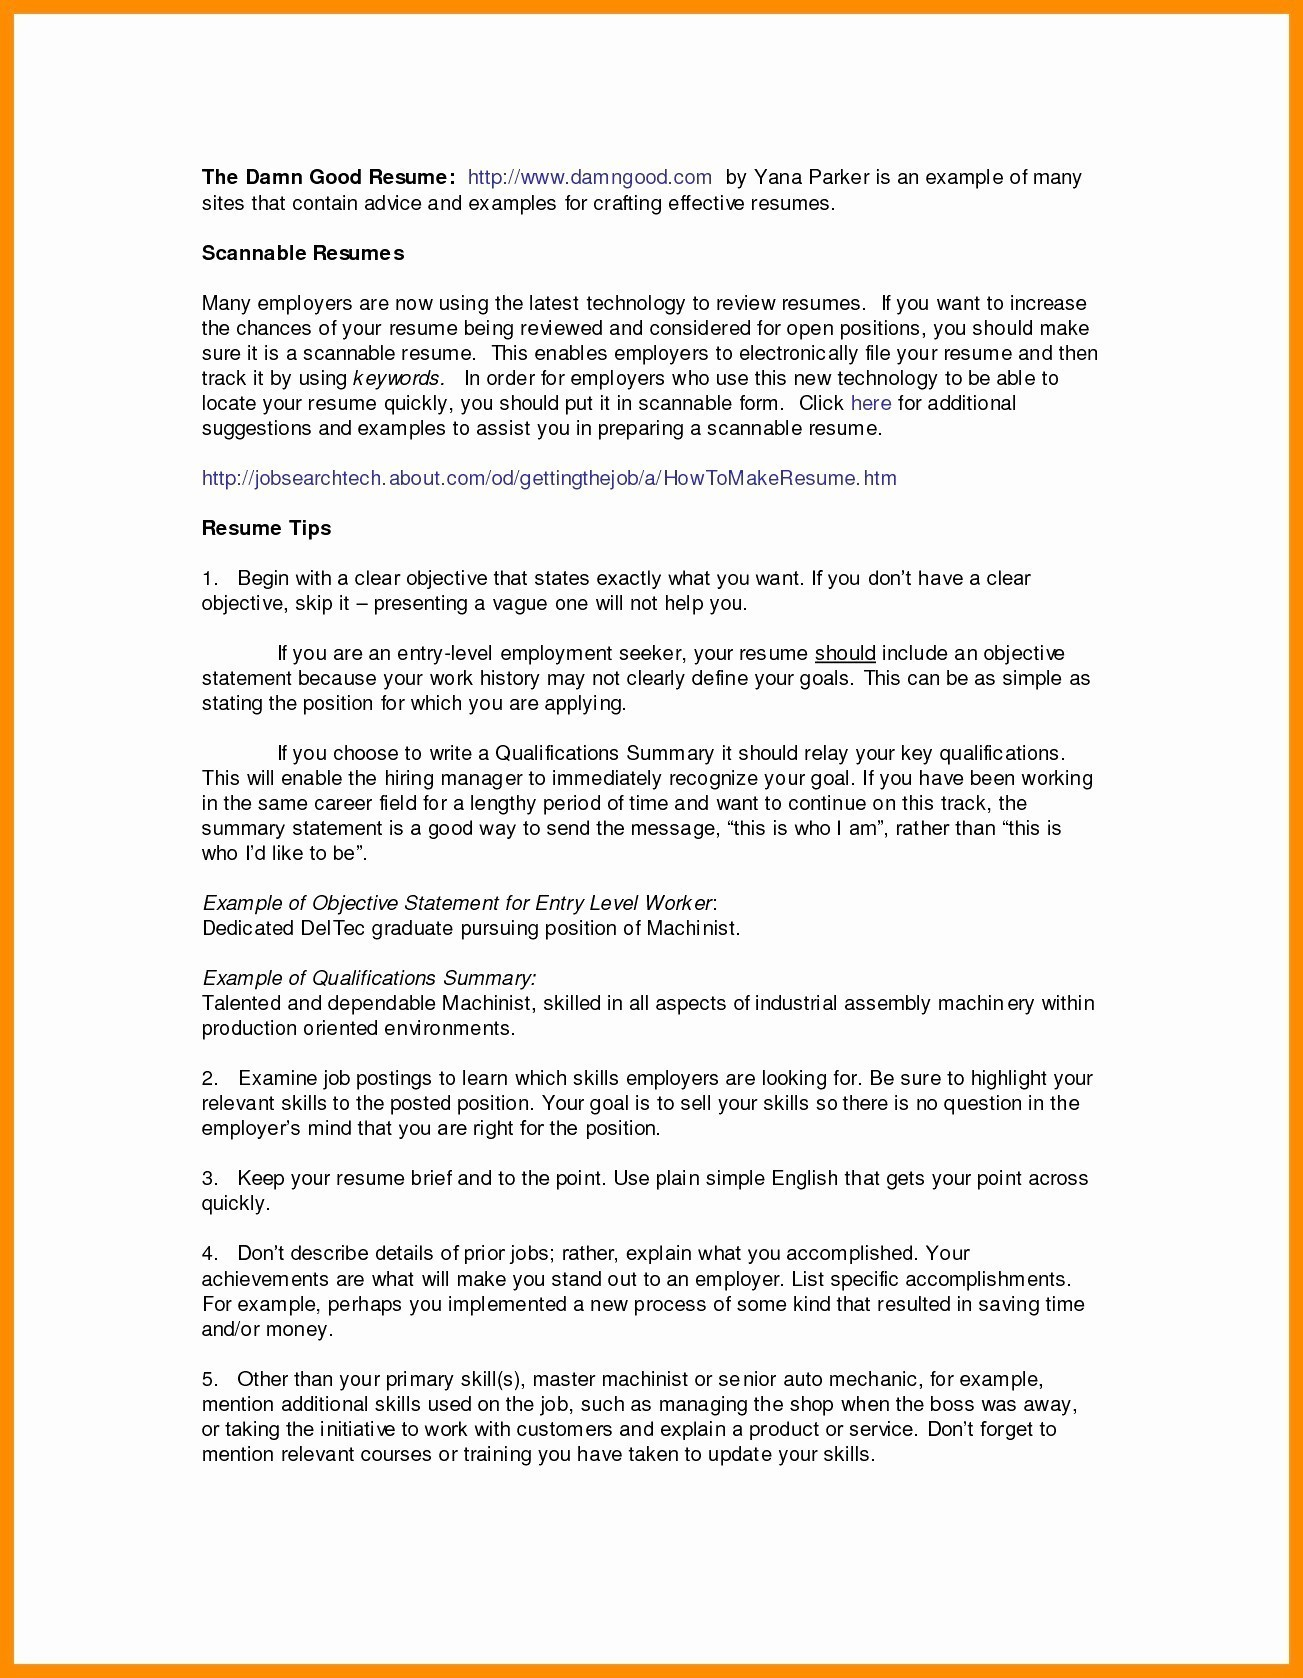 Best Place to Post Resume Online - Best Place to Post Resume Line Awesome Resumes for Dummies New